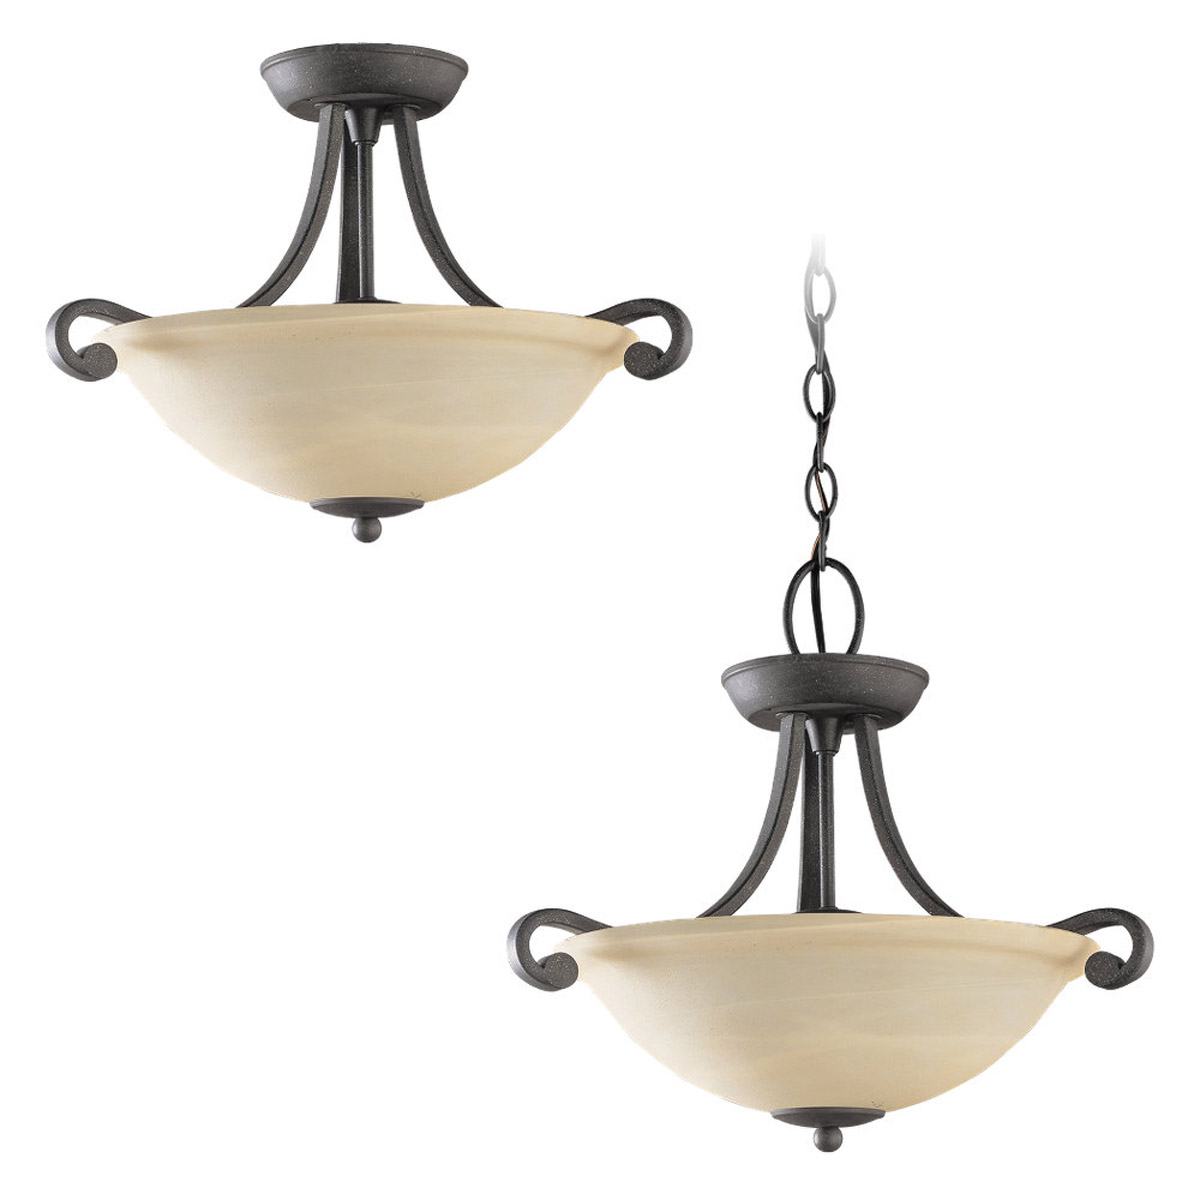 Sea Gull Lighting Serenity 2 Light Semi-Flush Mount Convertible in Weathered Iron 51190-07